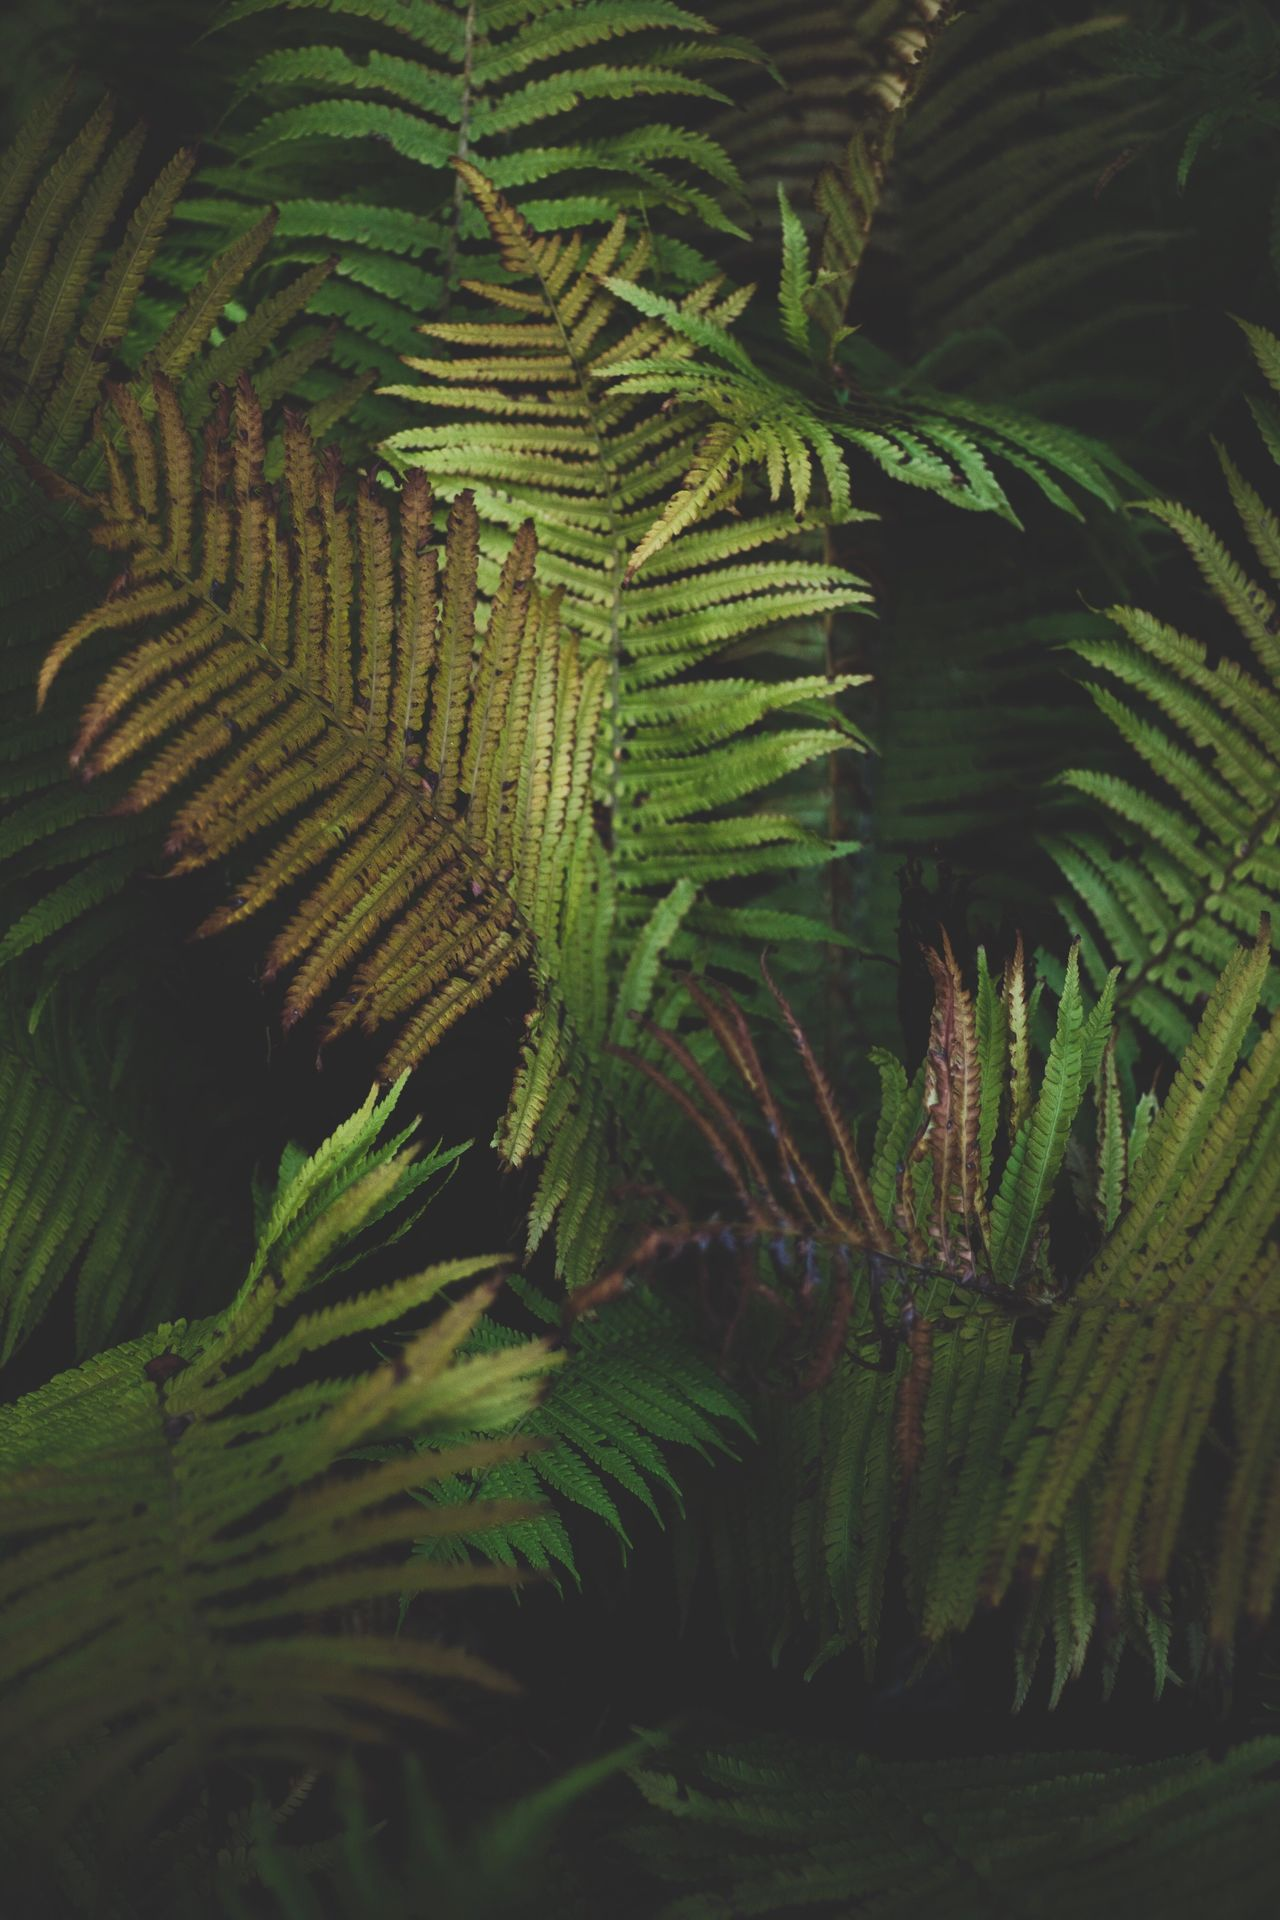 Growth Green color Nature leaf fern Plant beauty in Nature frond no people day Tranquility outdoors close-up Palm tree Tree Freshness Palm tree ferns